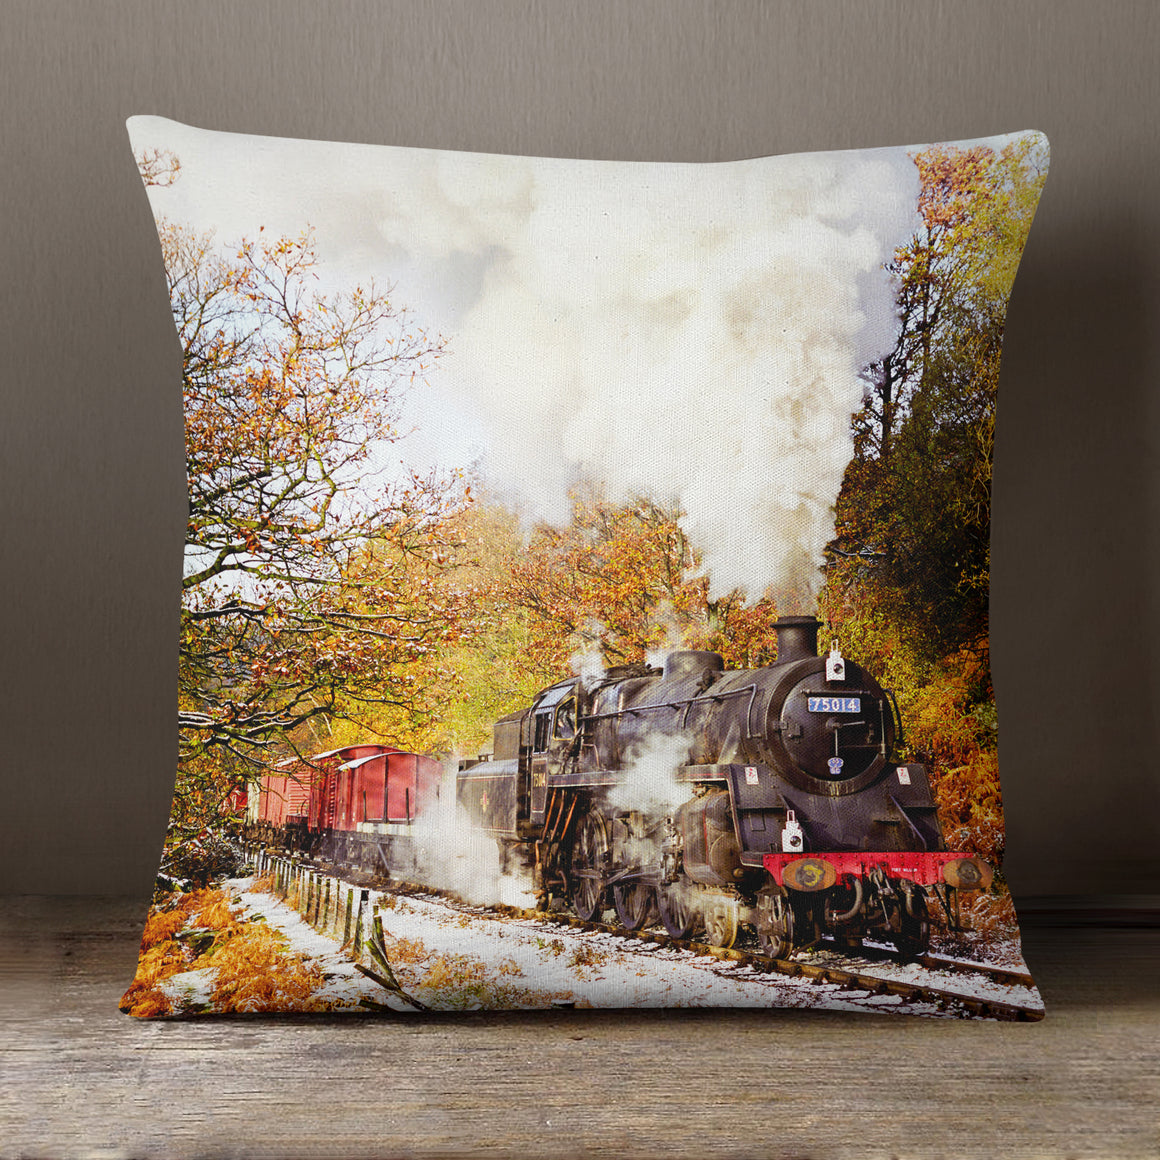 Beck Hole, North York Moors Railway  - 40 x 40 cm Cushion (JFS00034)